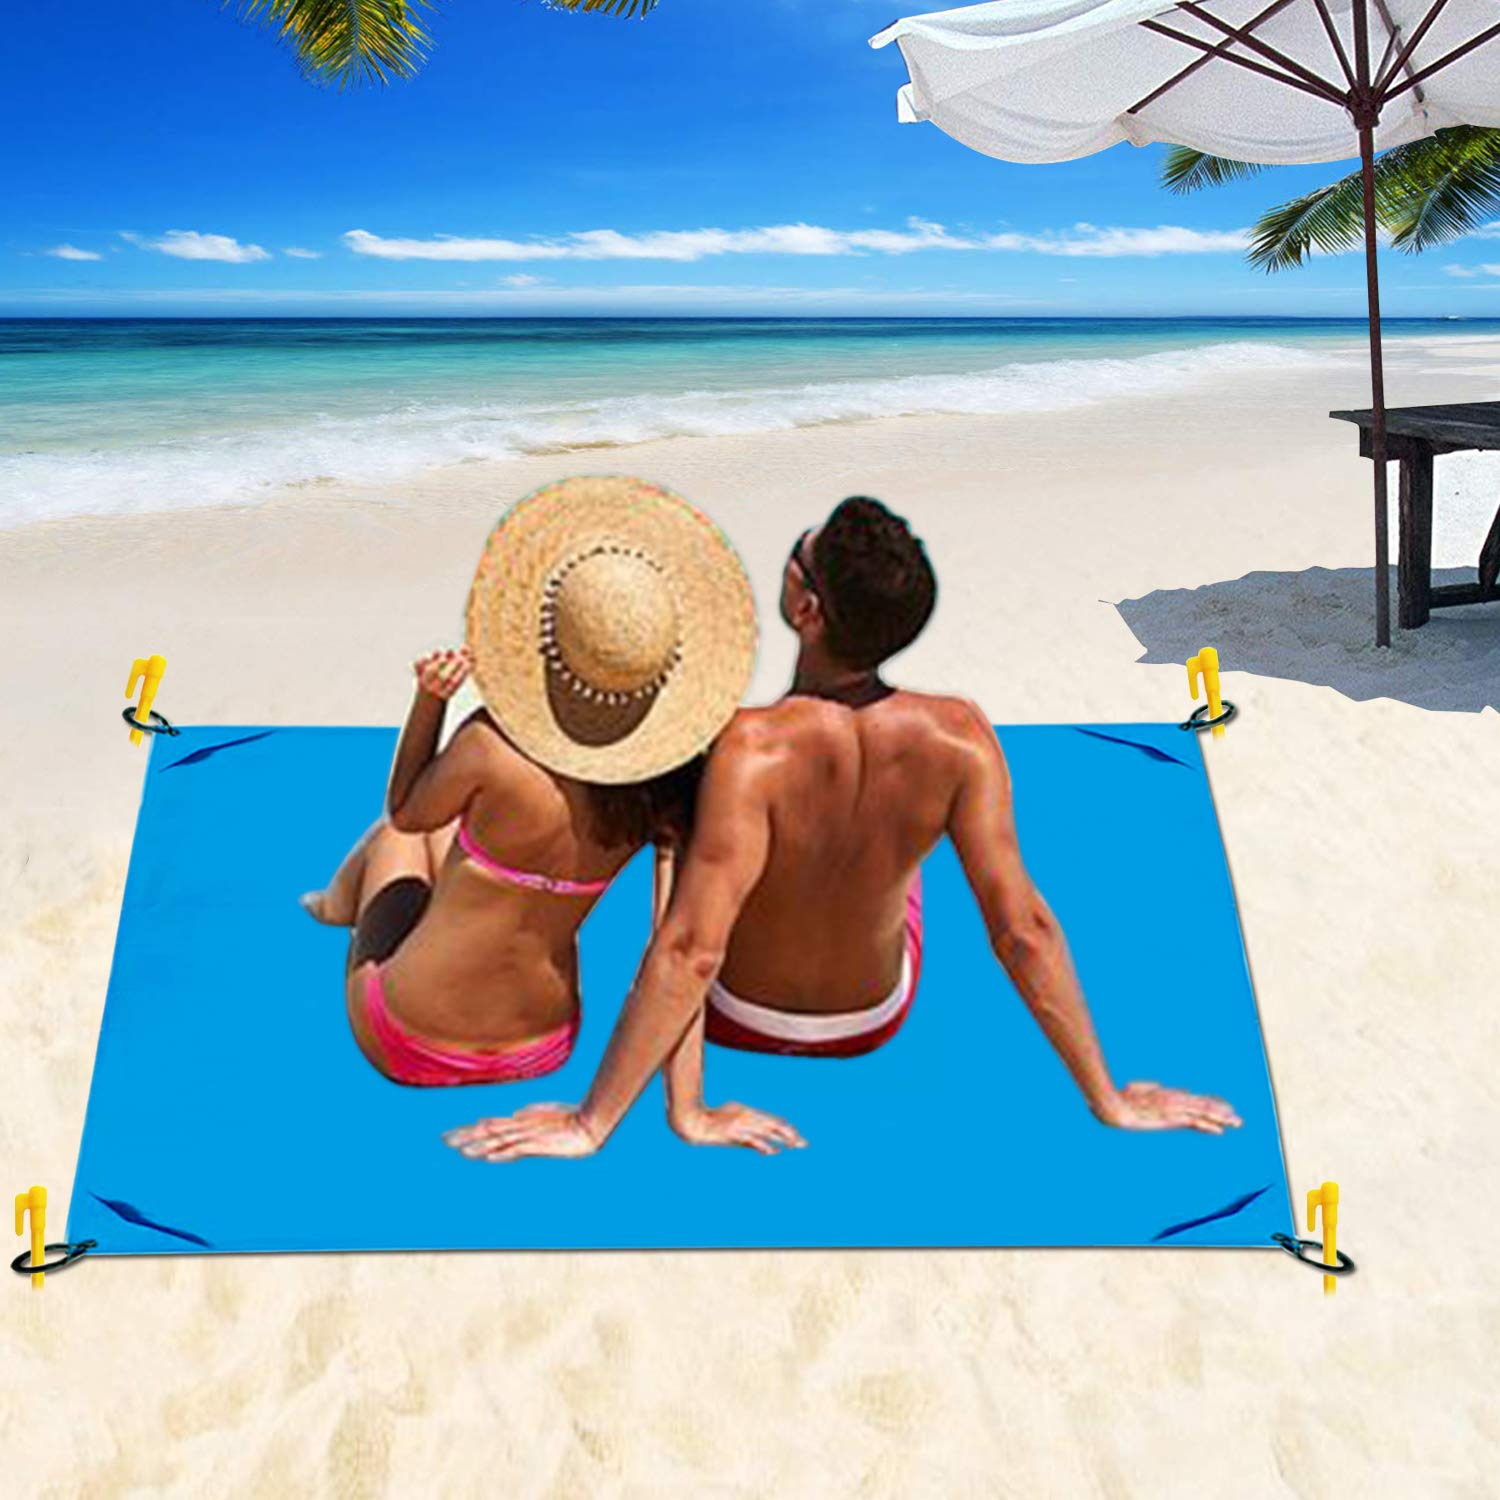 Amazon.com: KAYCY - Manta de bolsillo de playa para camping ...